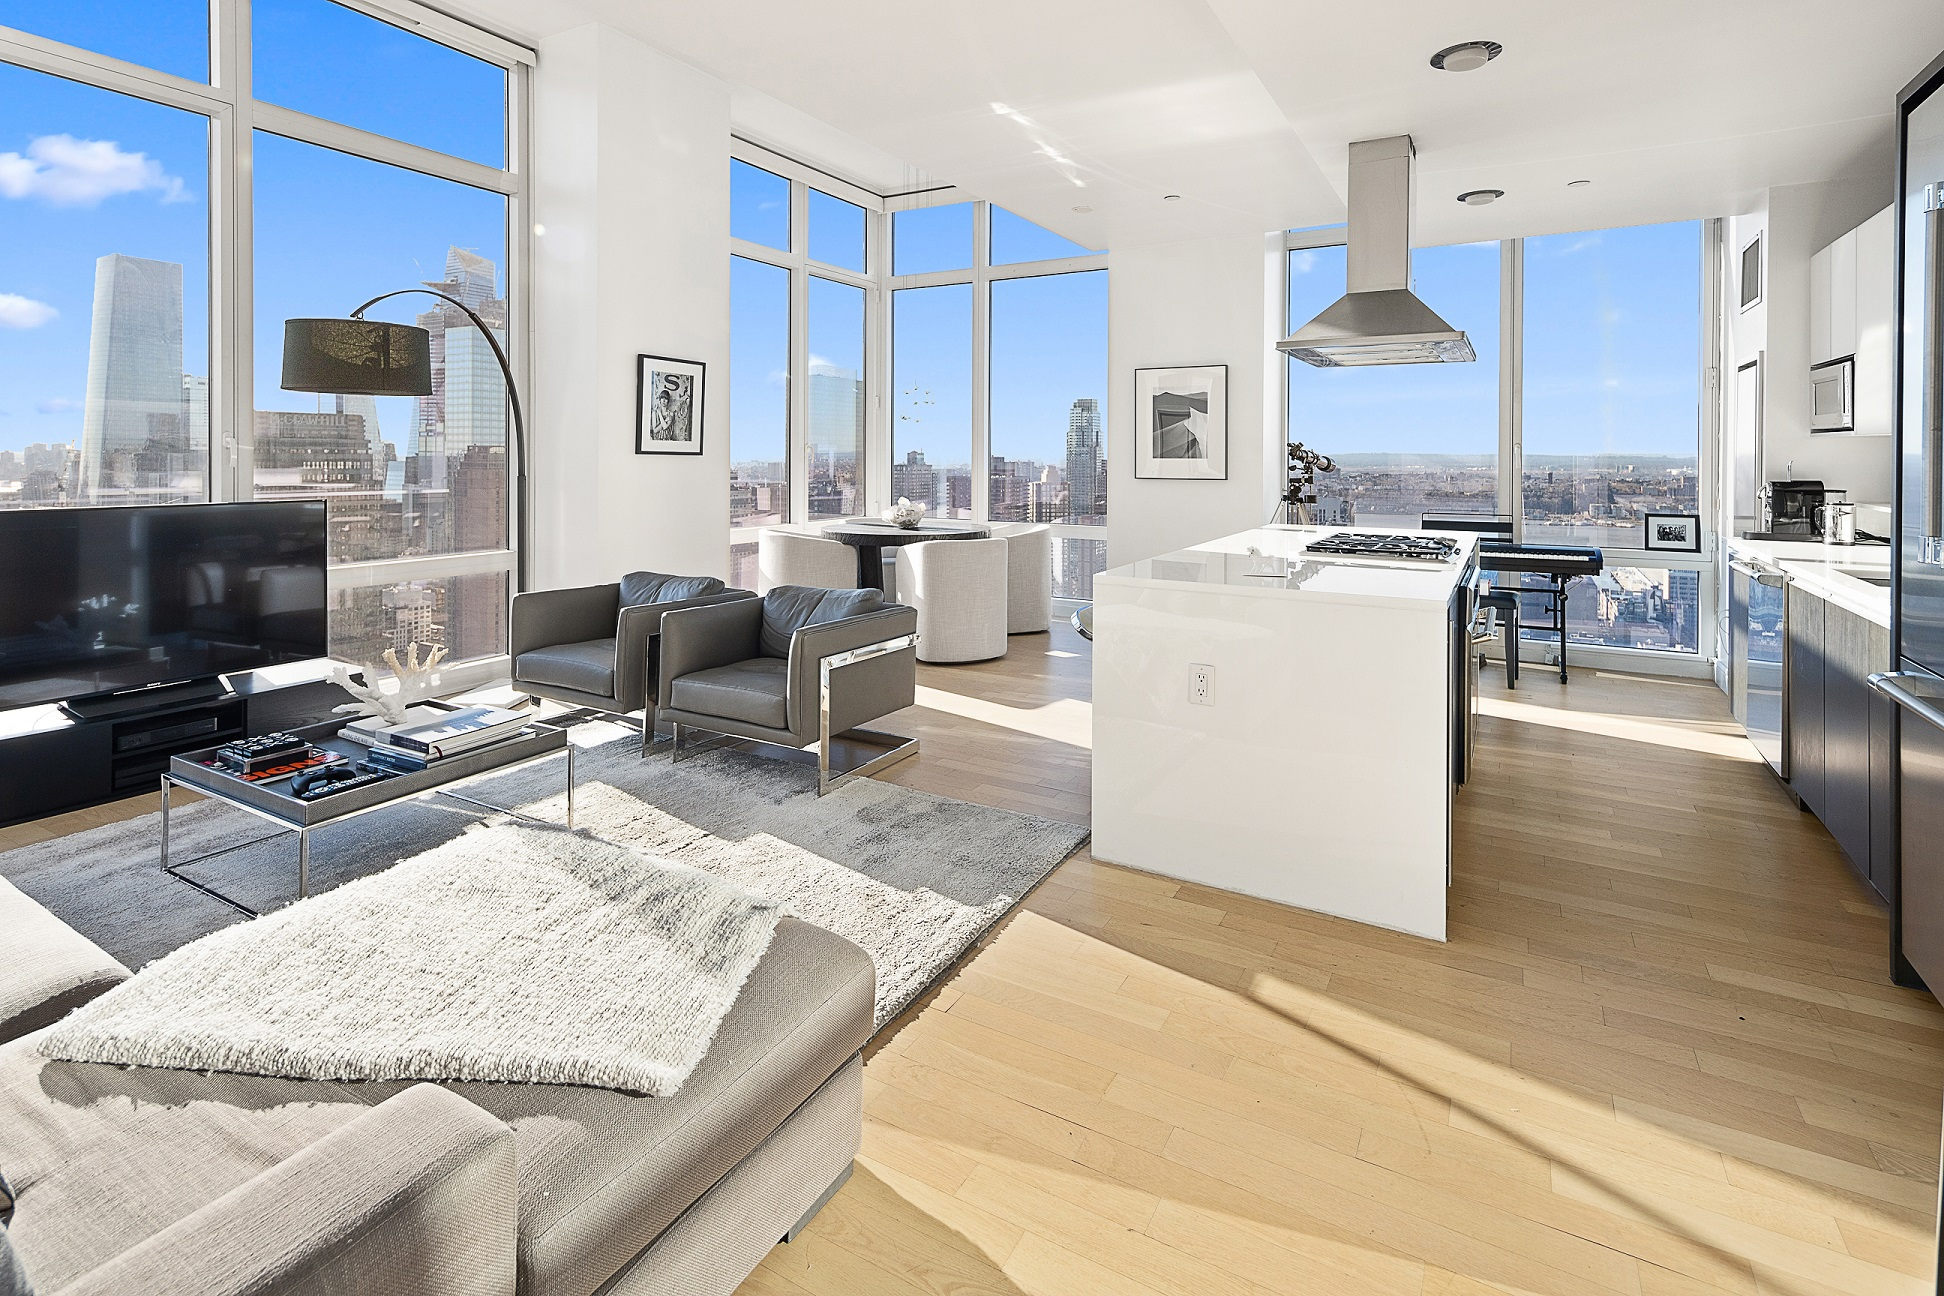 INVESTORS ONLY- TENANT IN PLACE TILL JULY 2022!!Million dollar views to the South to Statue of Liberty & Hudson River to the West for every room.The Home: This extra large square feet) immaculate 2 bed room with 2.5 bath at the Platinum. This modern split 2 bed room residence has approx. 12' ceilings with floor-to-ceiling windows, an open kitchen with state-of-the-art Thermador appliances, including a wine refrigerator. This unit features light oak wood floors throughout, a Bosch full-size stacked washer/dryer, plenty of closet space and an unusually large master bedroom with a walk in closet. The master bathroom features a Neptune deep soaking tub and a separate shower with Dornbracht faucets and toto toilet. Views-Unlike any home in Manhattan. South views stretch to Statue of Liberty & beyond and the Western Views of Hudson River & New Jersey.The Amenities- Included in the common charges is a residence only, full floor of indoor and outdoor private, professionally-staffed resort style health club and spa (The Zone). There is a golf simulator, pool table and television lounge, a fitness room, meditation/meeting lounge, a quiet room with massage chairs and relaxing audio and video, experiential showers, a sauna, spa treatment rooms, yoga studio, a full calendar of complimentary classes and events, and a landscaped wraparound terrace with an outdoor fireplace with beautiful midtown views.The Building-Located at the The Crossroads of the World. This dramatic 43 glass design building has 24 hour doorman & concierge. 26 feet fire place in the lobby that is surrounded by a moat of moving water. The building has a two level garage with direct access to building, cold storage, bike room. Easy access to 16 subway lines makes this an ideal home for commuting to any part of the city.